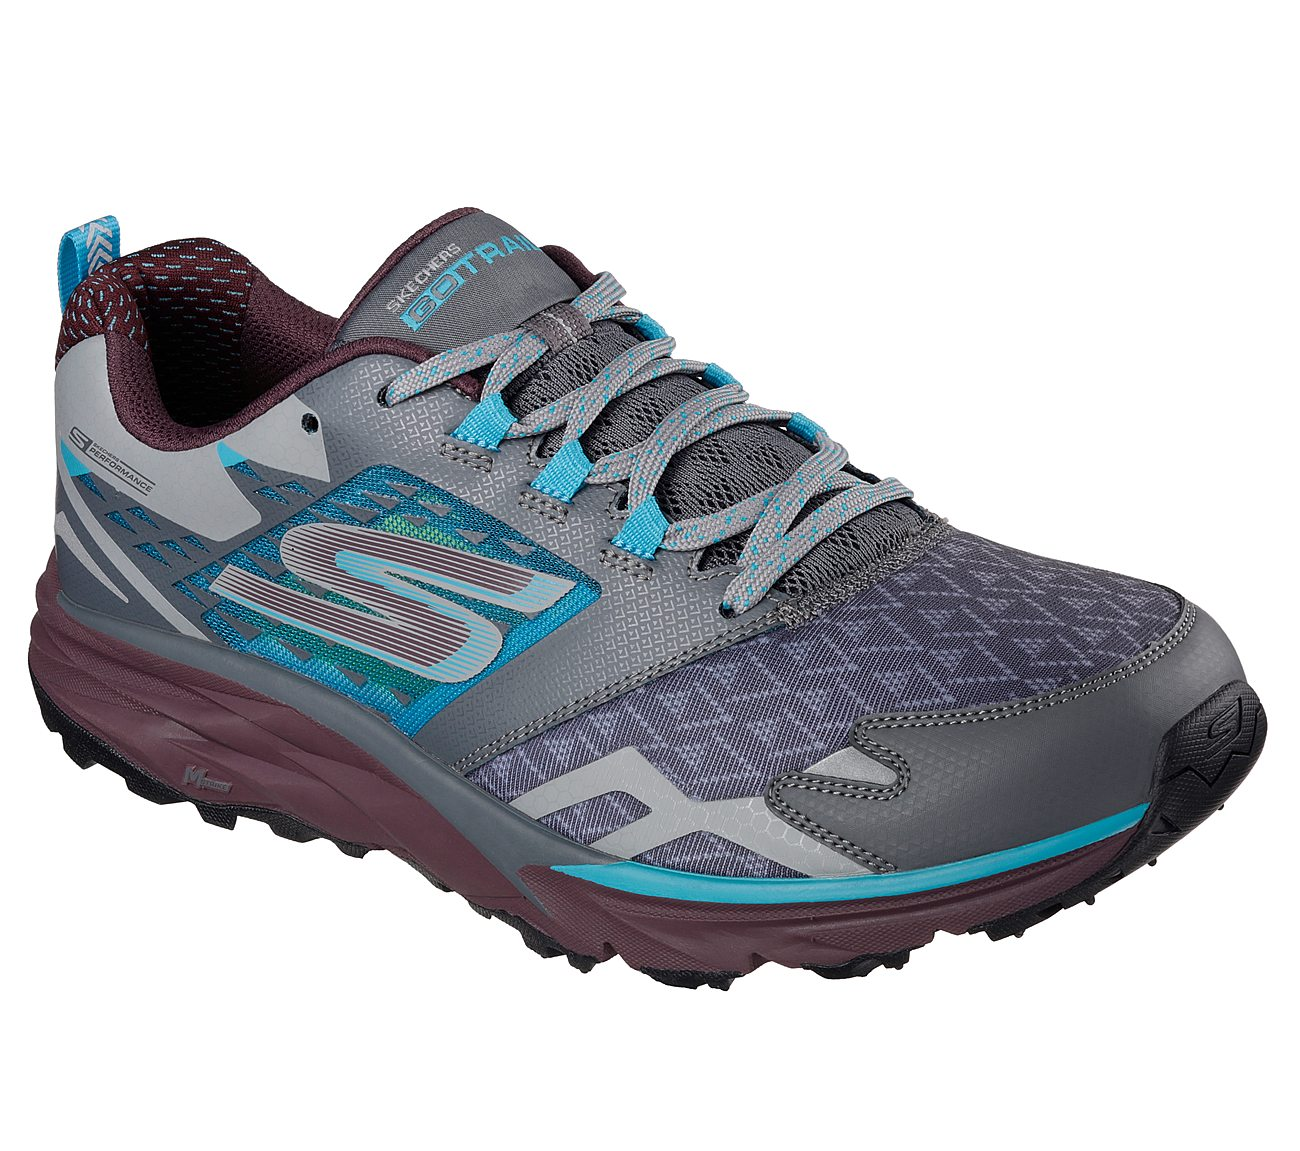 Buy Skechers Skechers Gotrail Skechers Performance Shoes